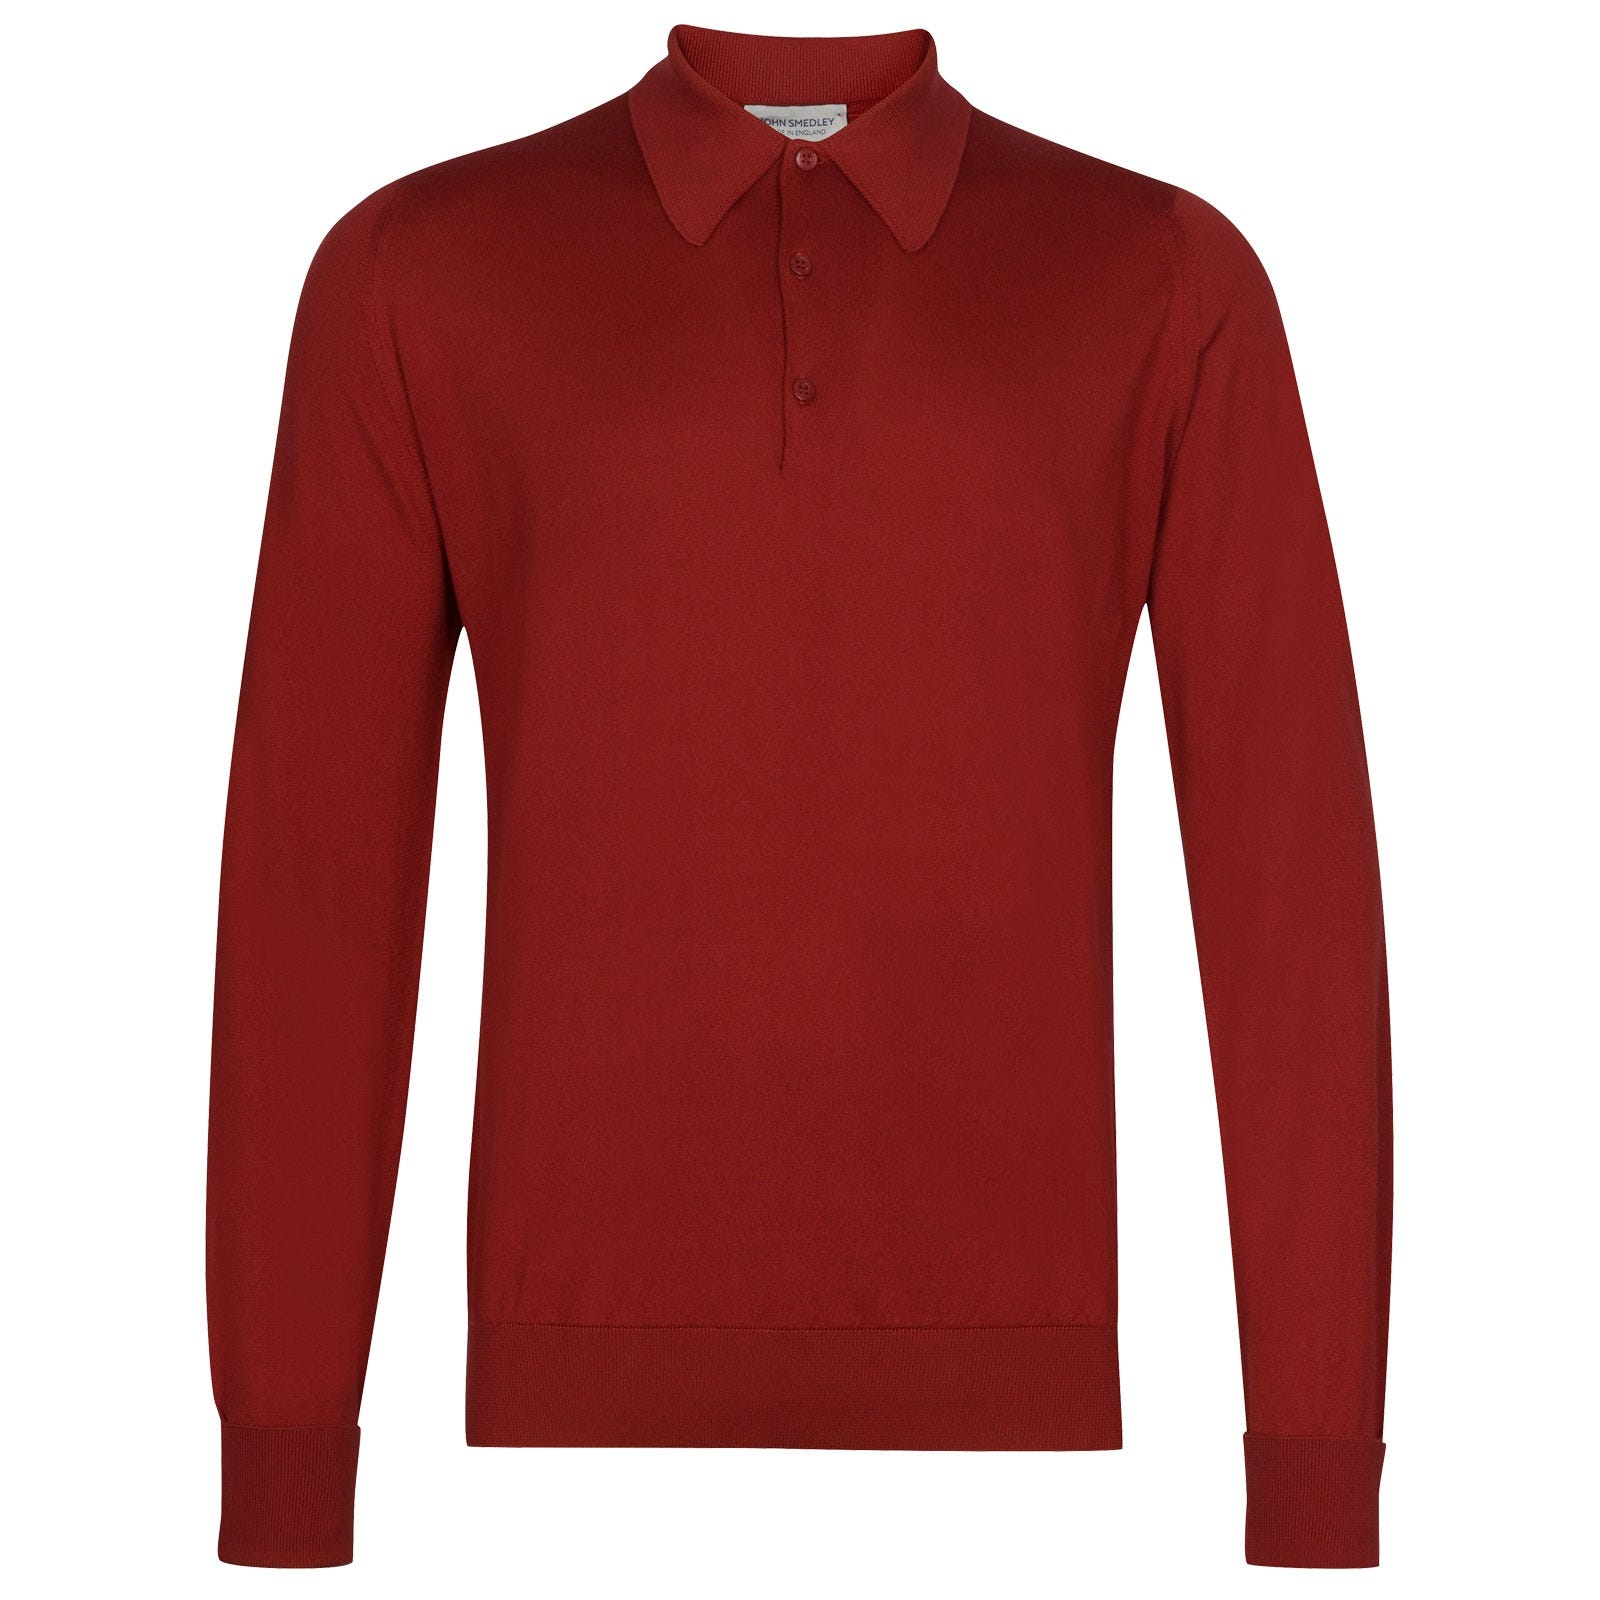 John Smedley Finchley in Anther Red Shirt-XSM